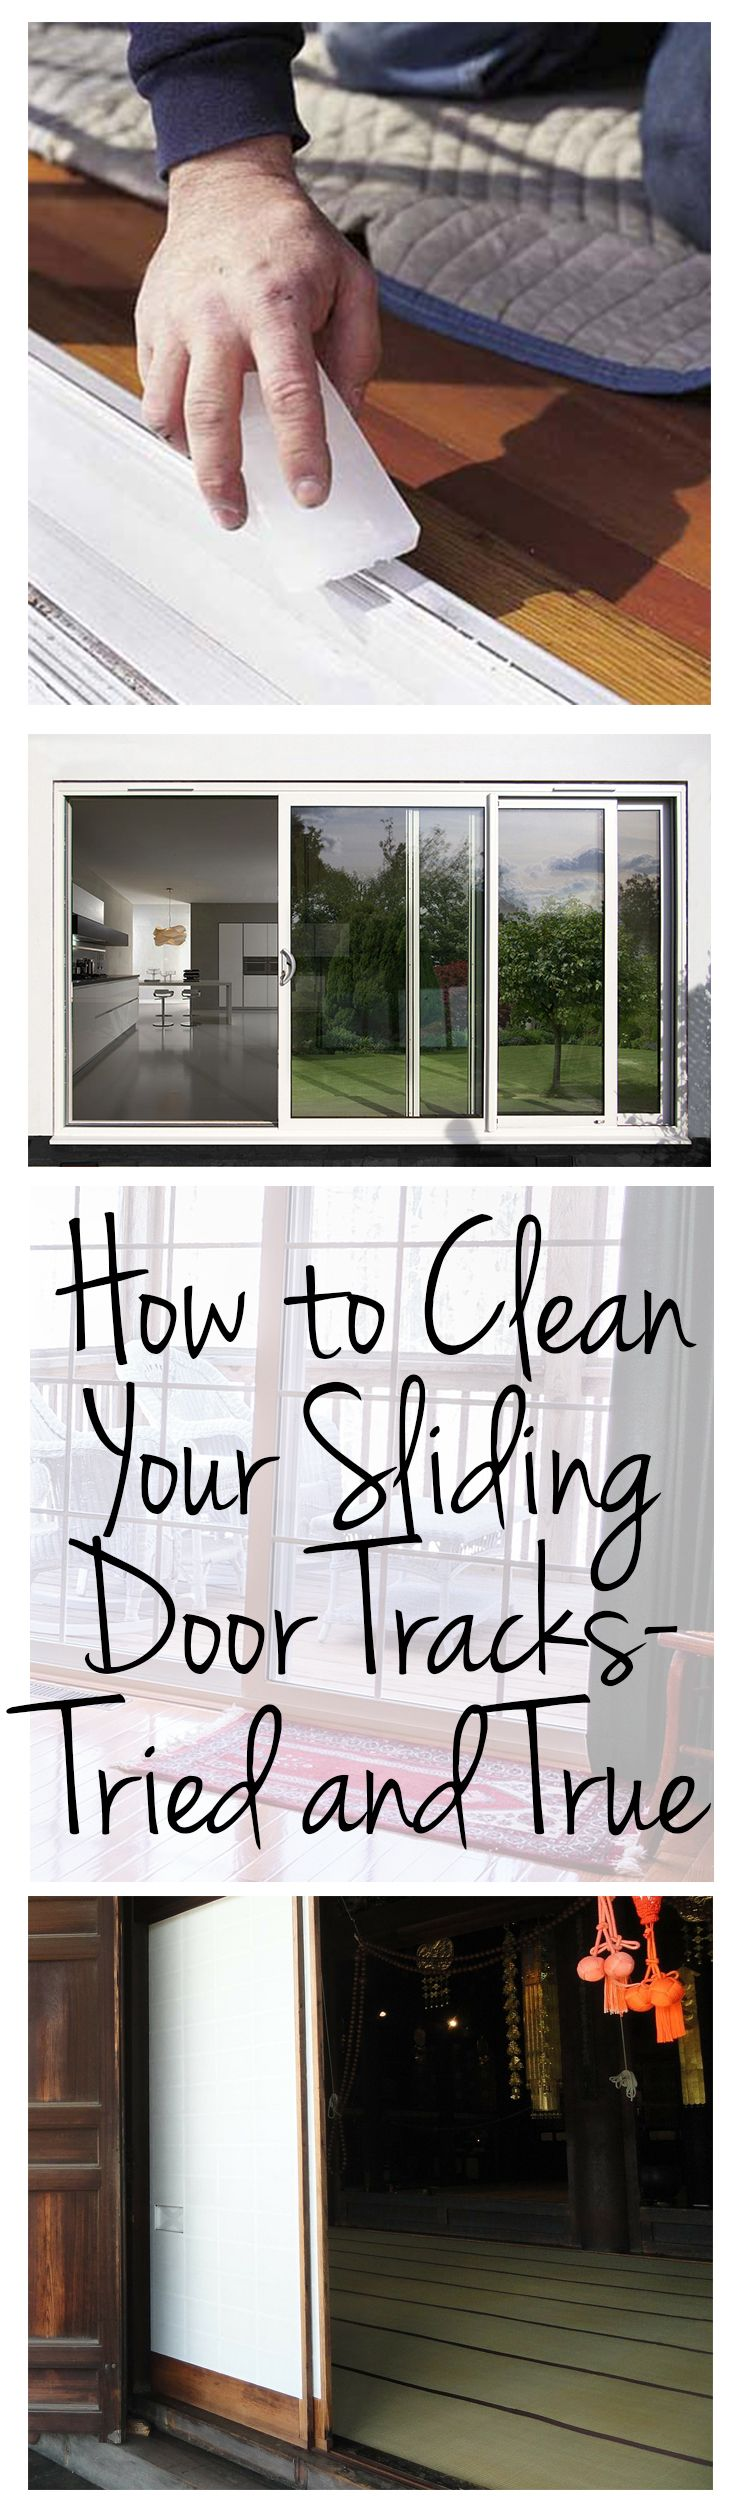 Cleaning sliding door tracks, Cleaning, clean house, cleaning tips, cleaning hacks, popular pin, DIY cleaning, home cleaning, clutter free life, clutter free living hacks.